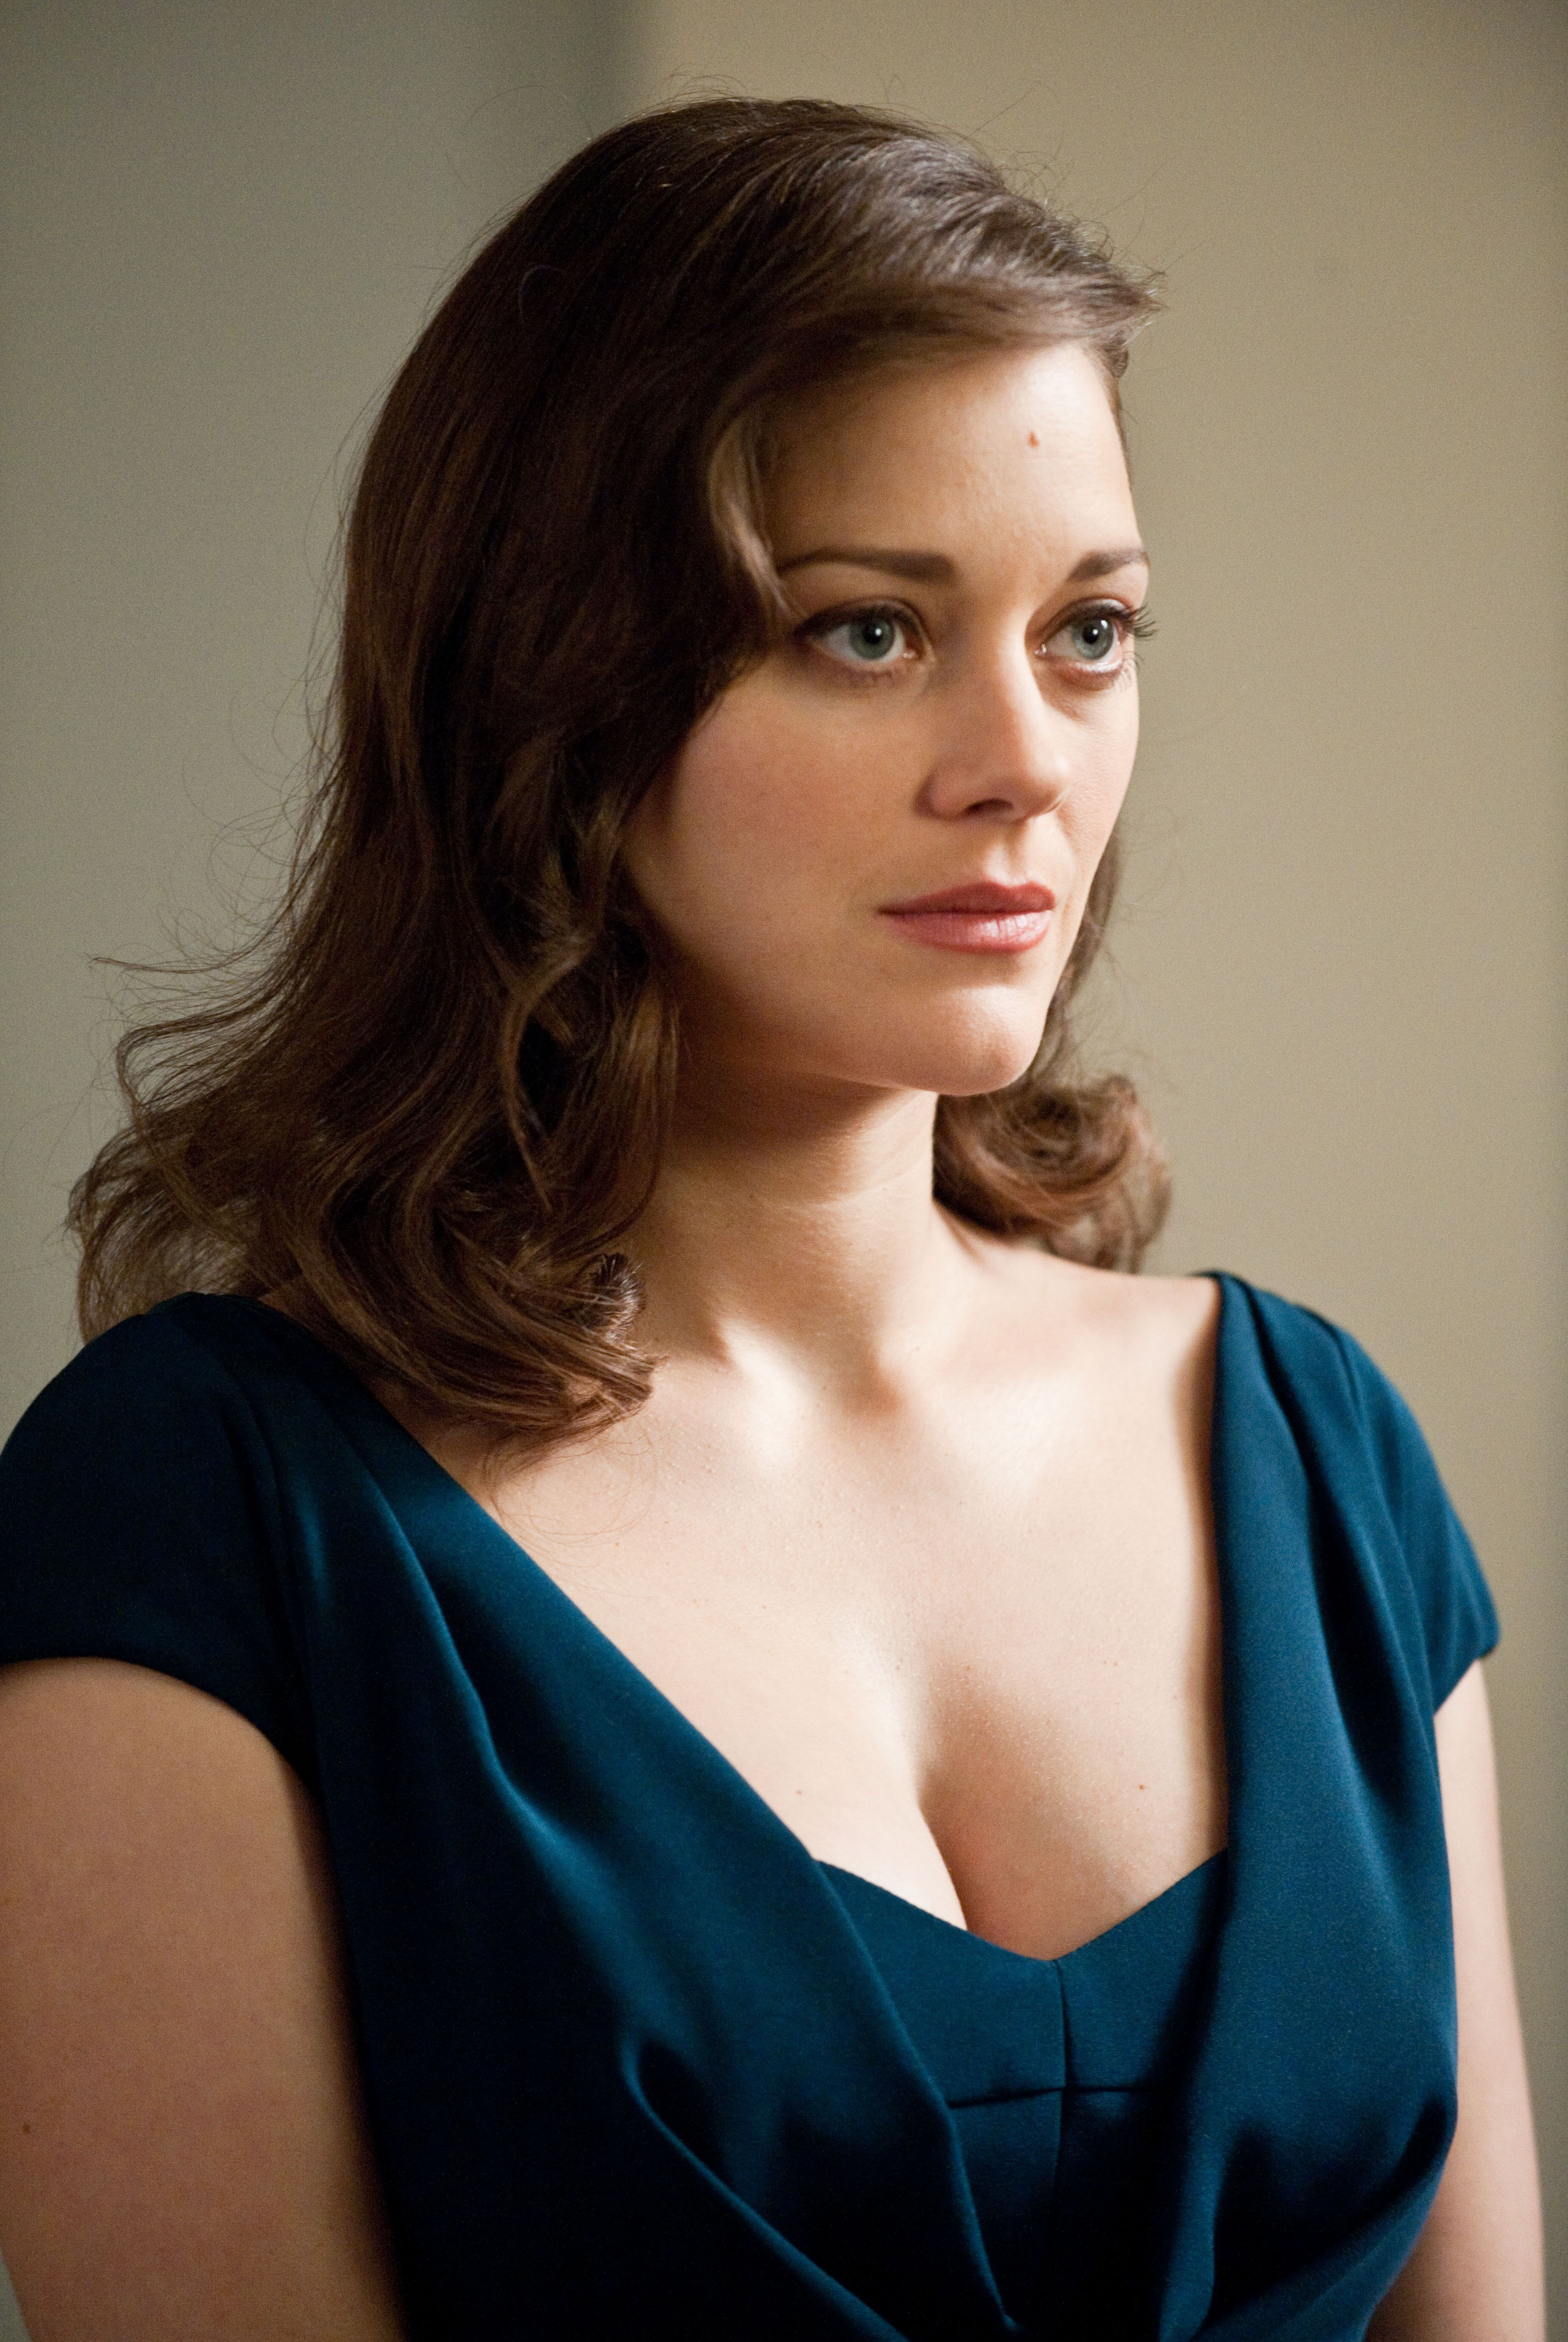 TheFappening Marion Cotillard nudes (15 foto and video), Sexy, Is a cute, Feet, lingerie 2006